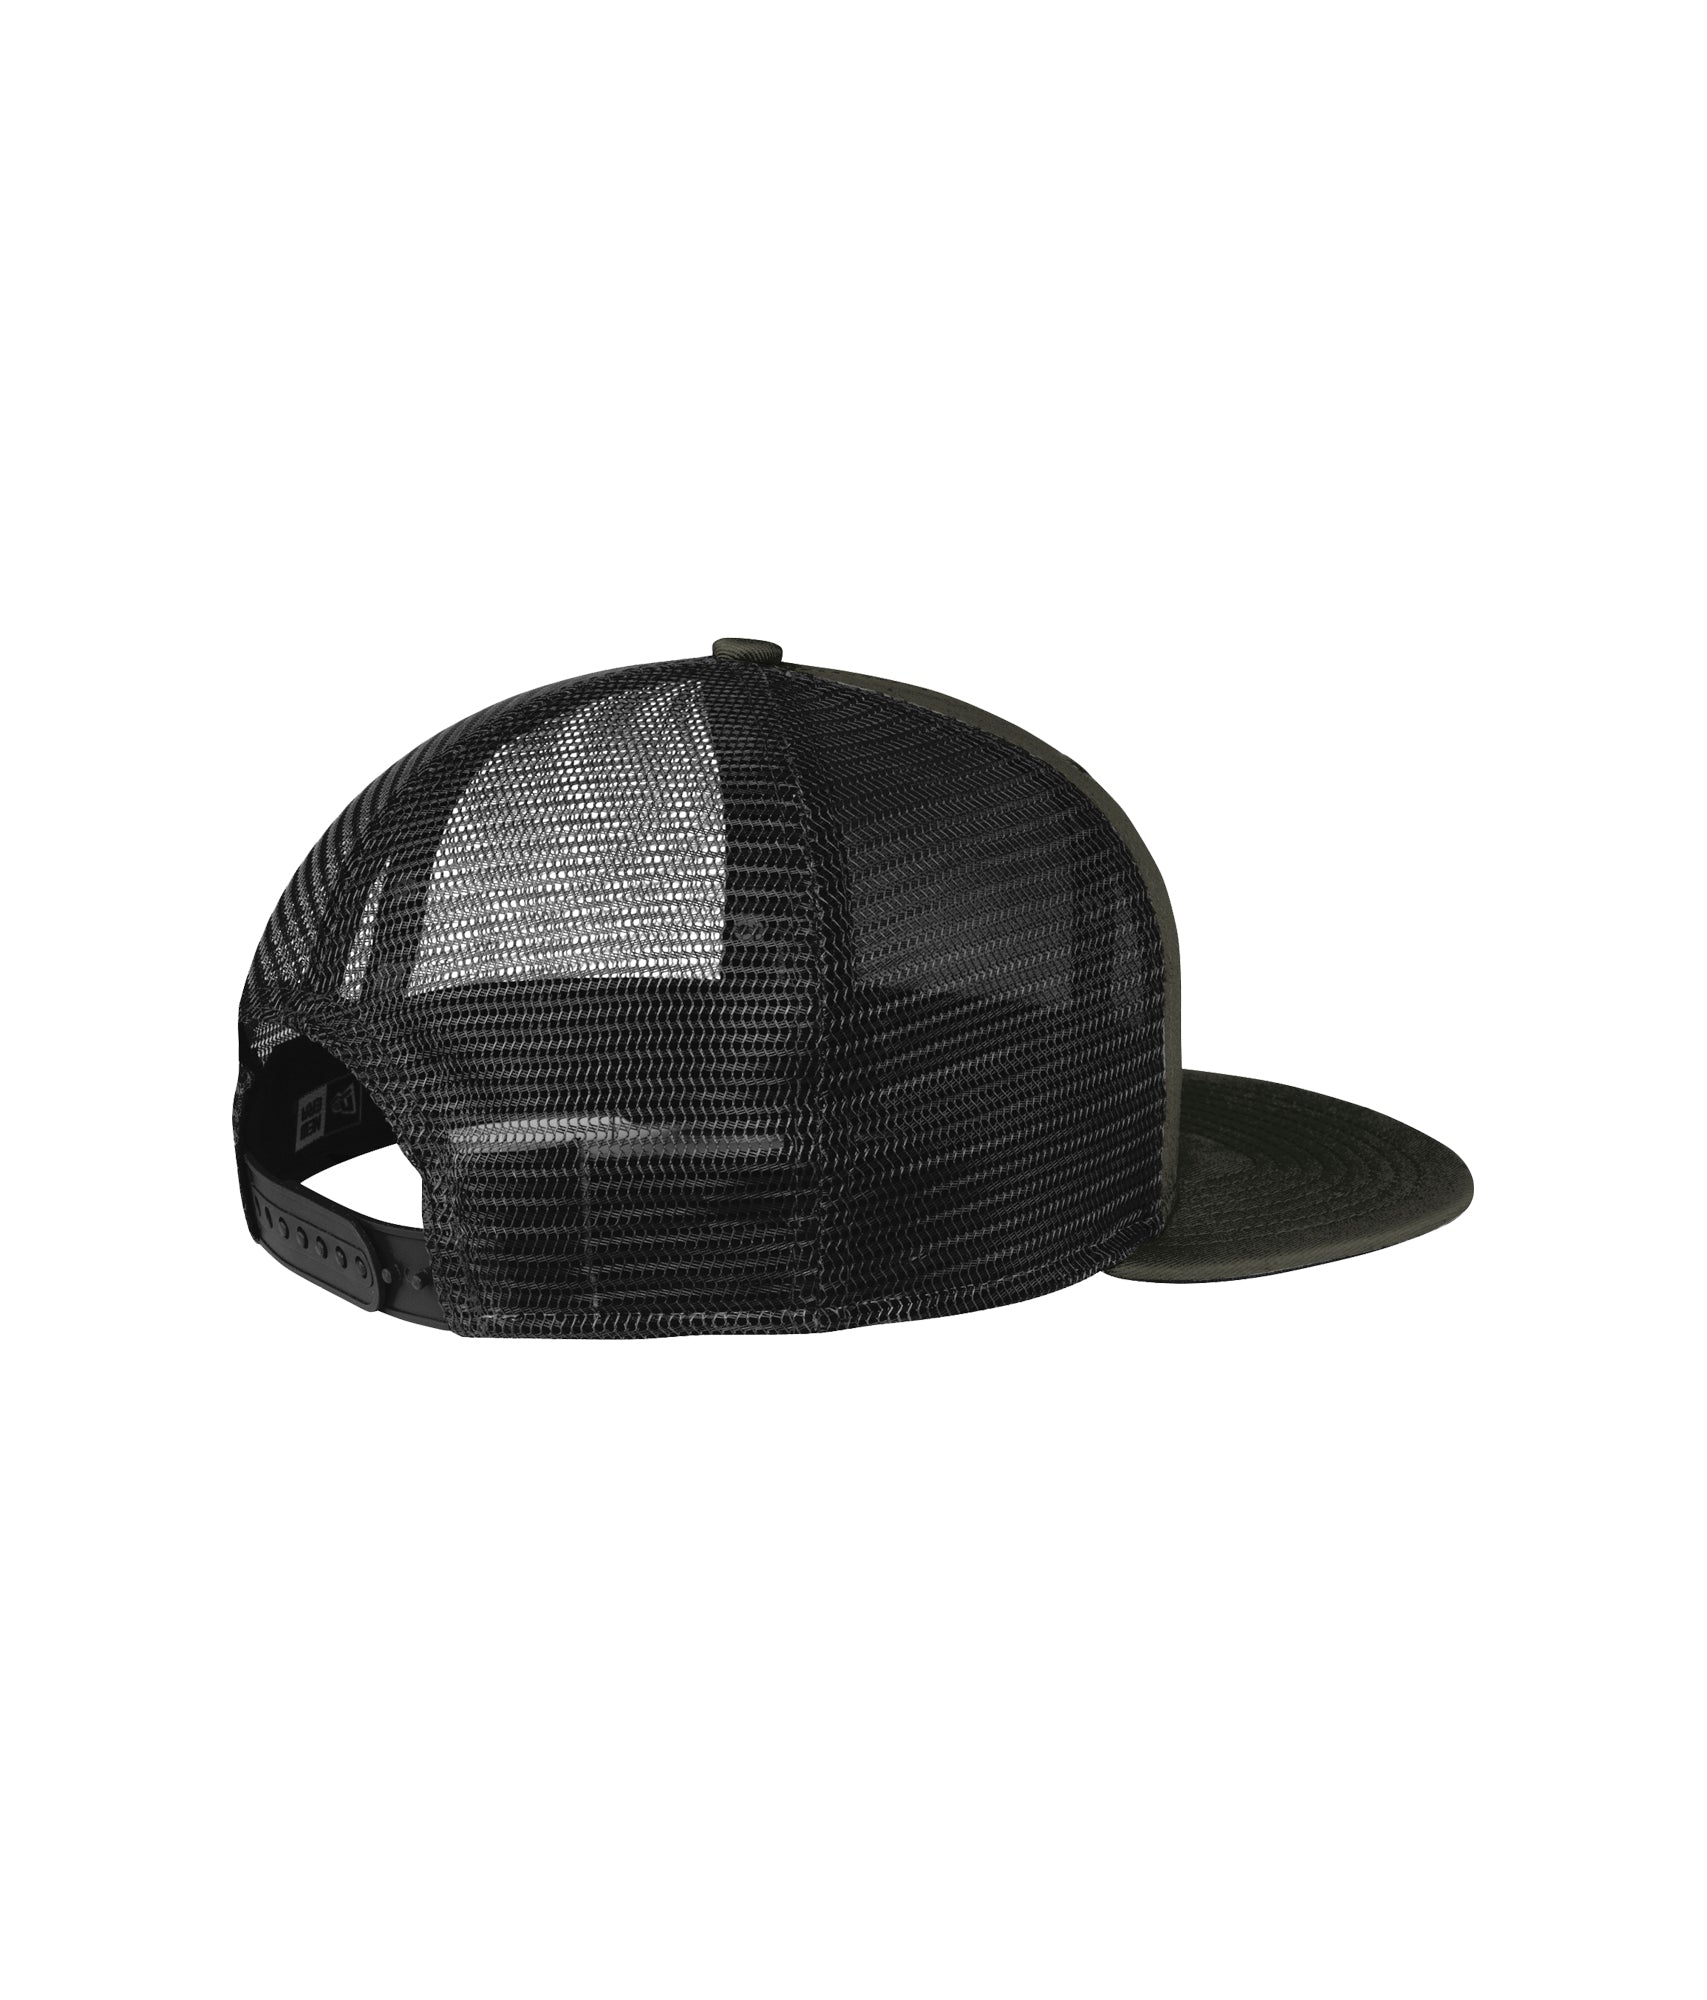 USKN RACE WEAR Flat Bill Snapback Hat